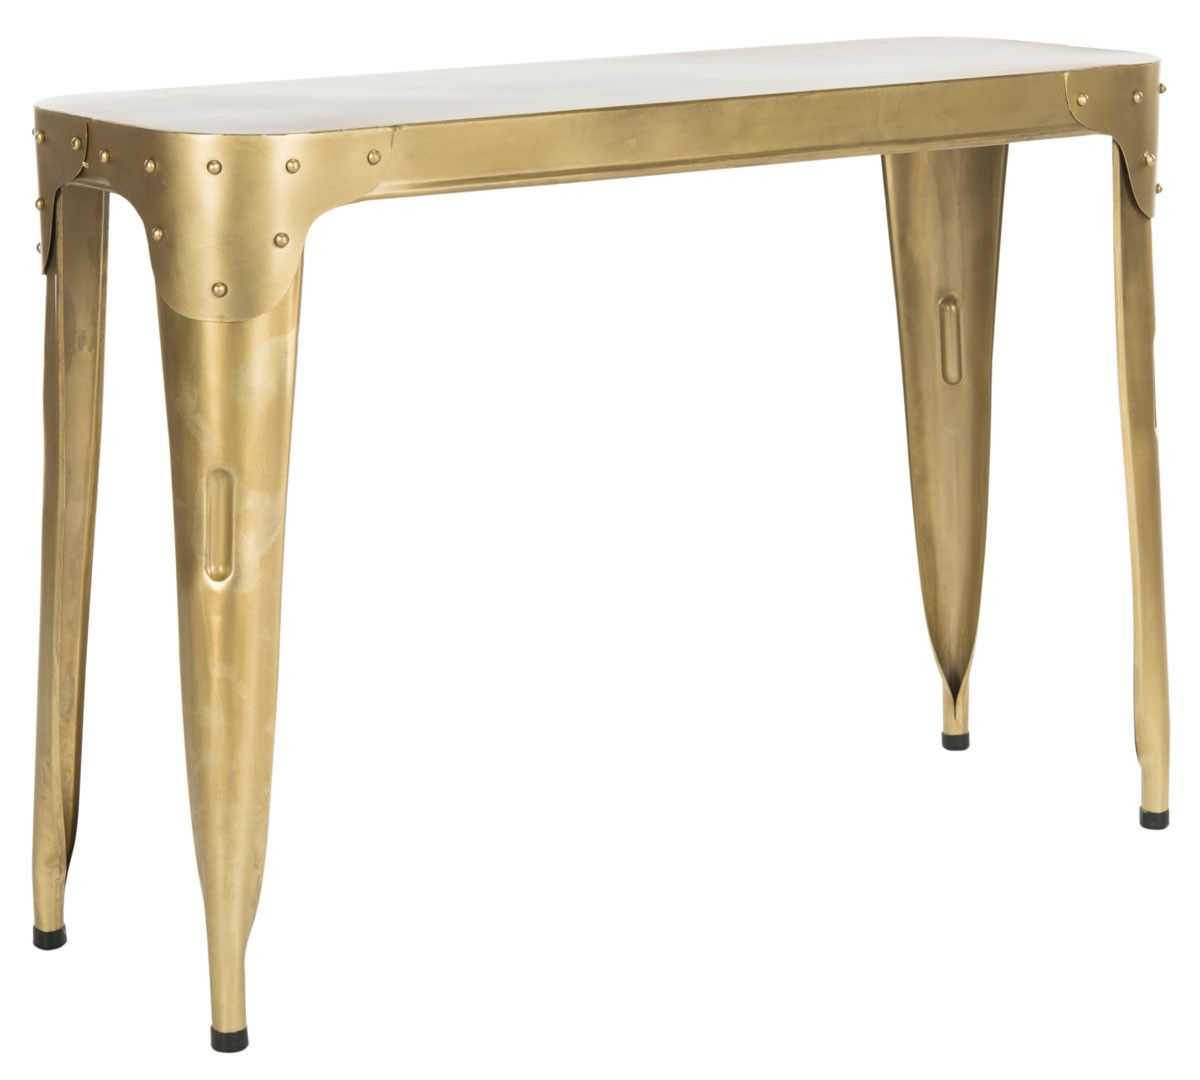 classic iron console table tables and consoles target waldo accent bedding with matching curtains ikea closet organizer glass coffee end set uttermost mirrors gold night round